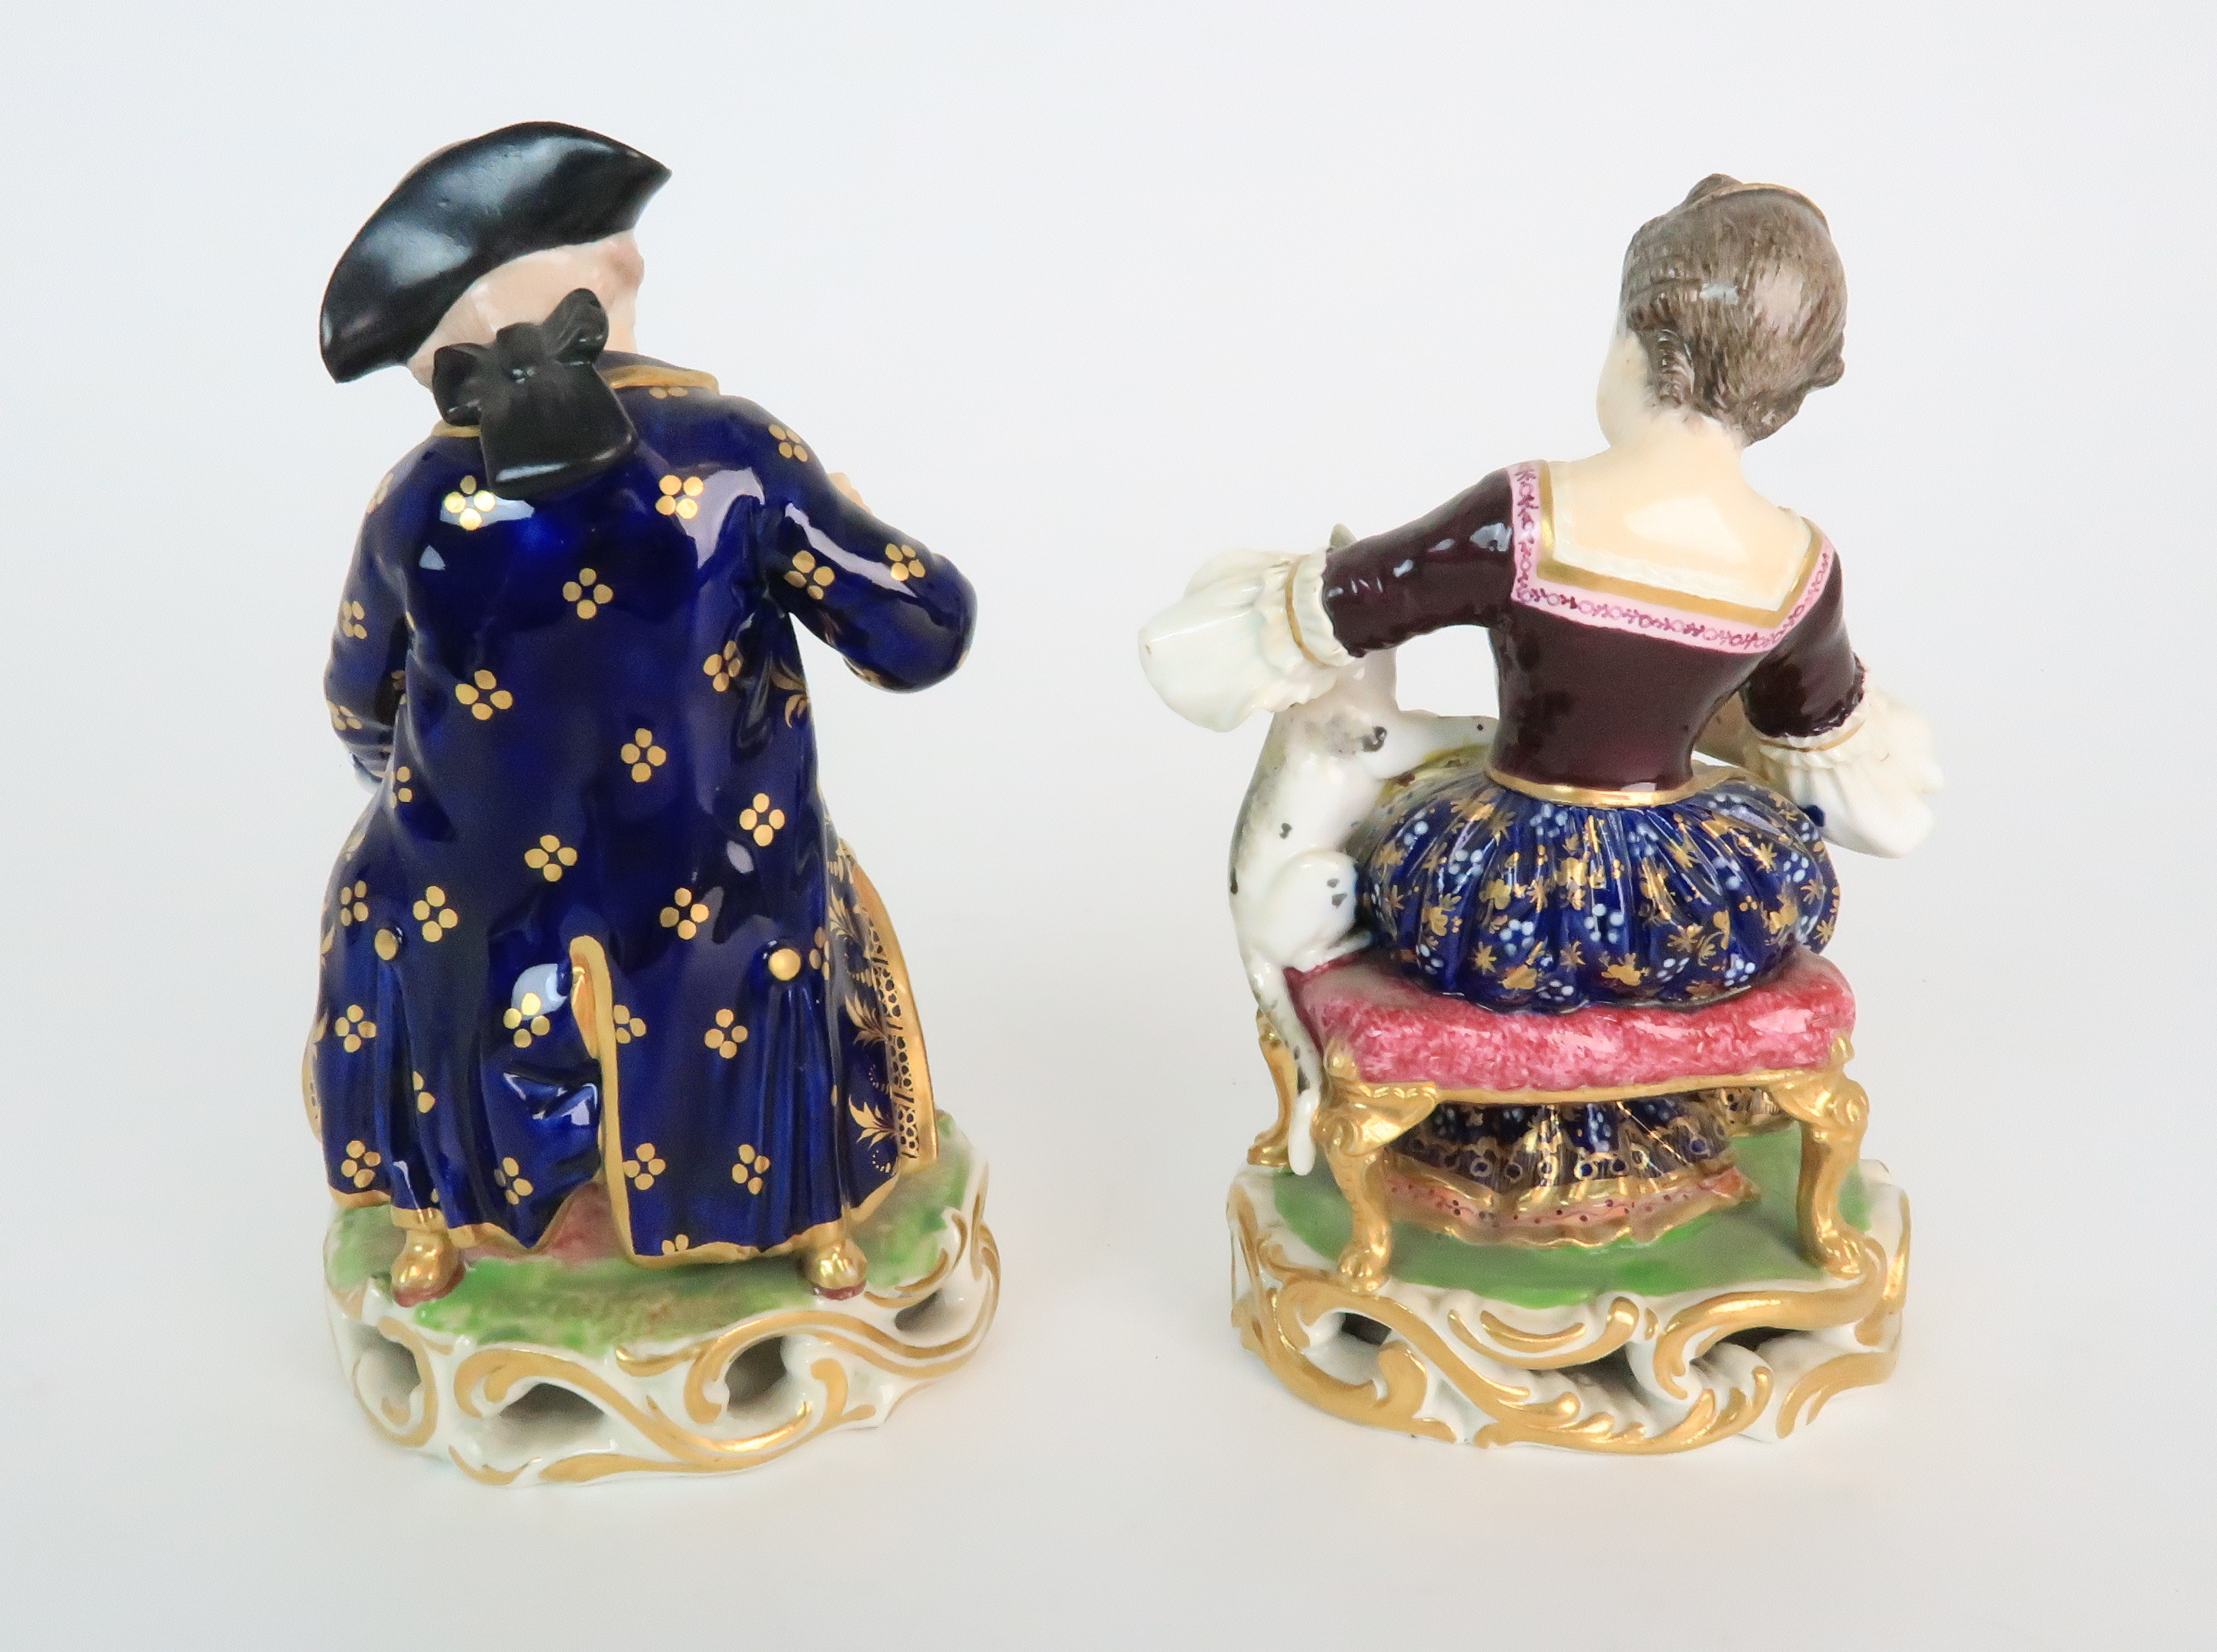 A PAIR OF DERBY PORCELAIN FIGURES early 19th century, modelled as a seated boy playing with a dog - Image 3 of 12